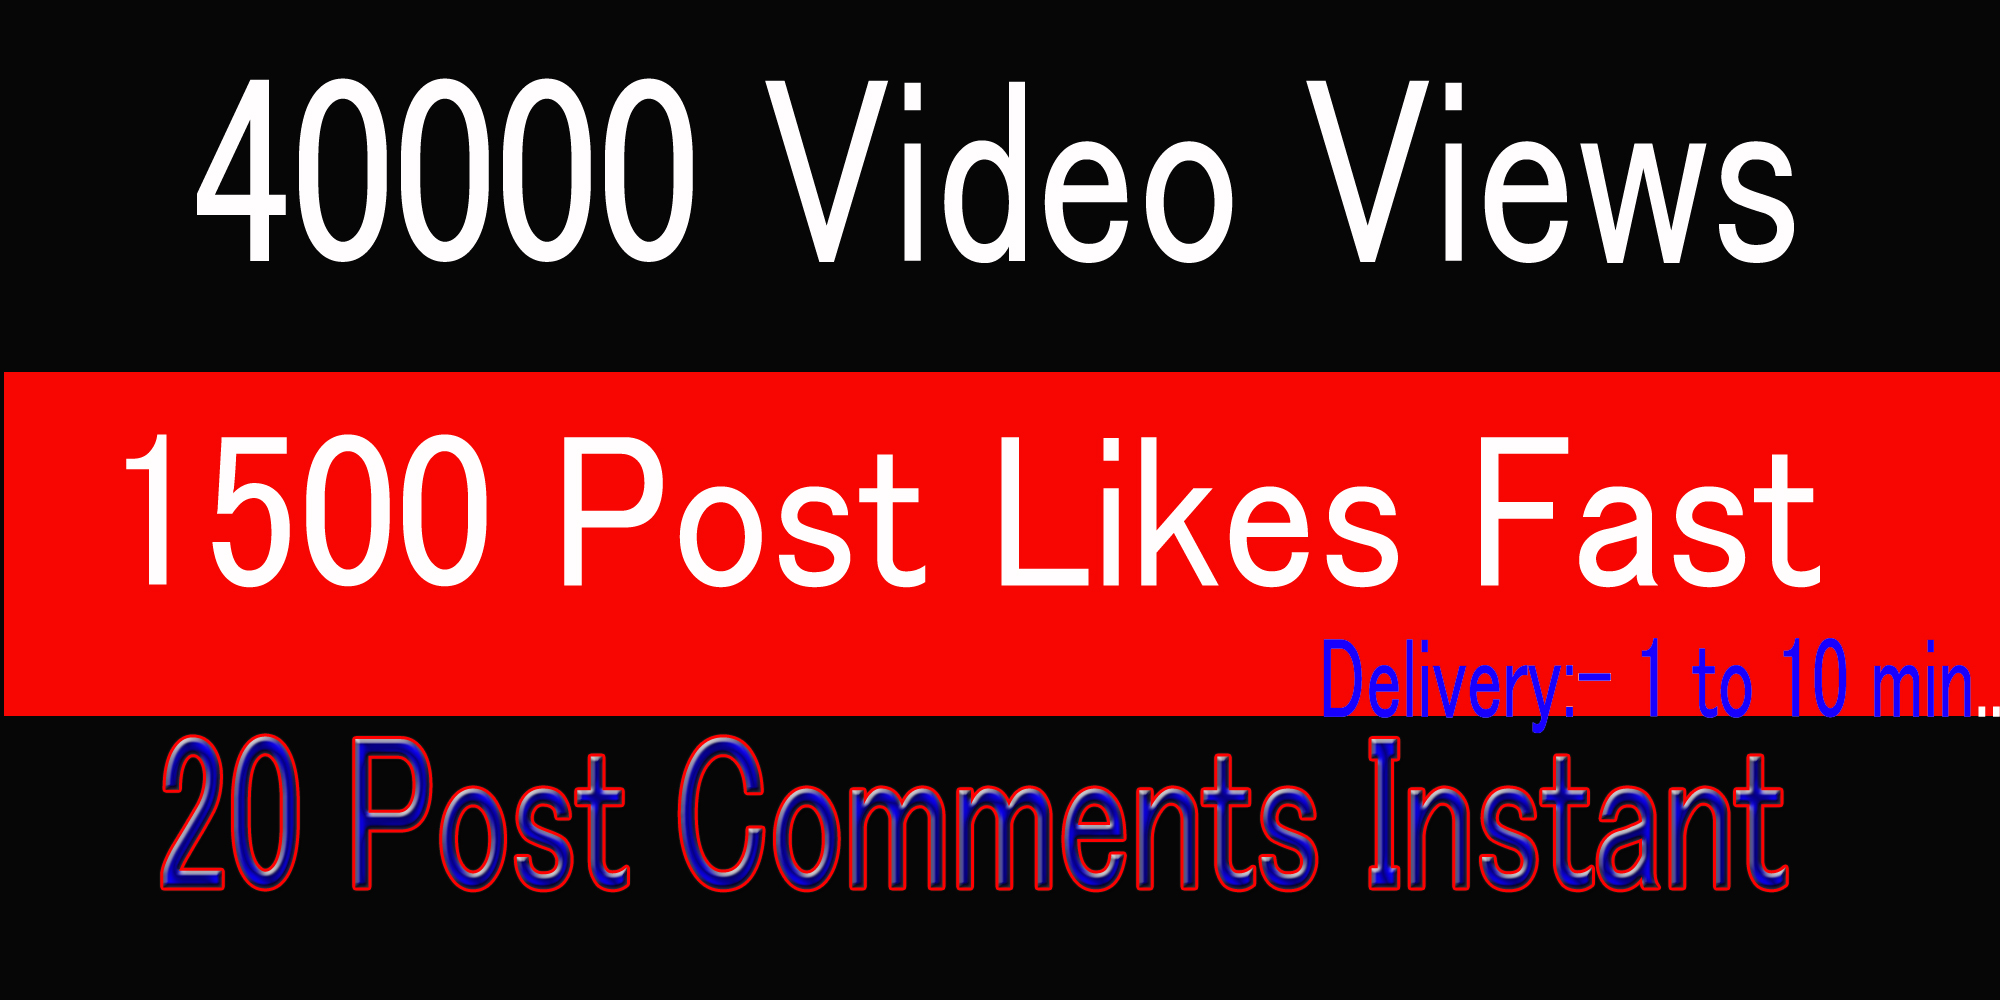 Oranic Fast 4OK Social music Video views or 1500 pic Likes or 20 comments Promotion